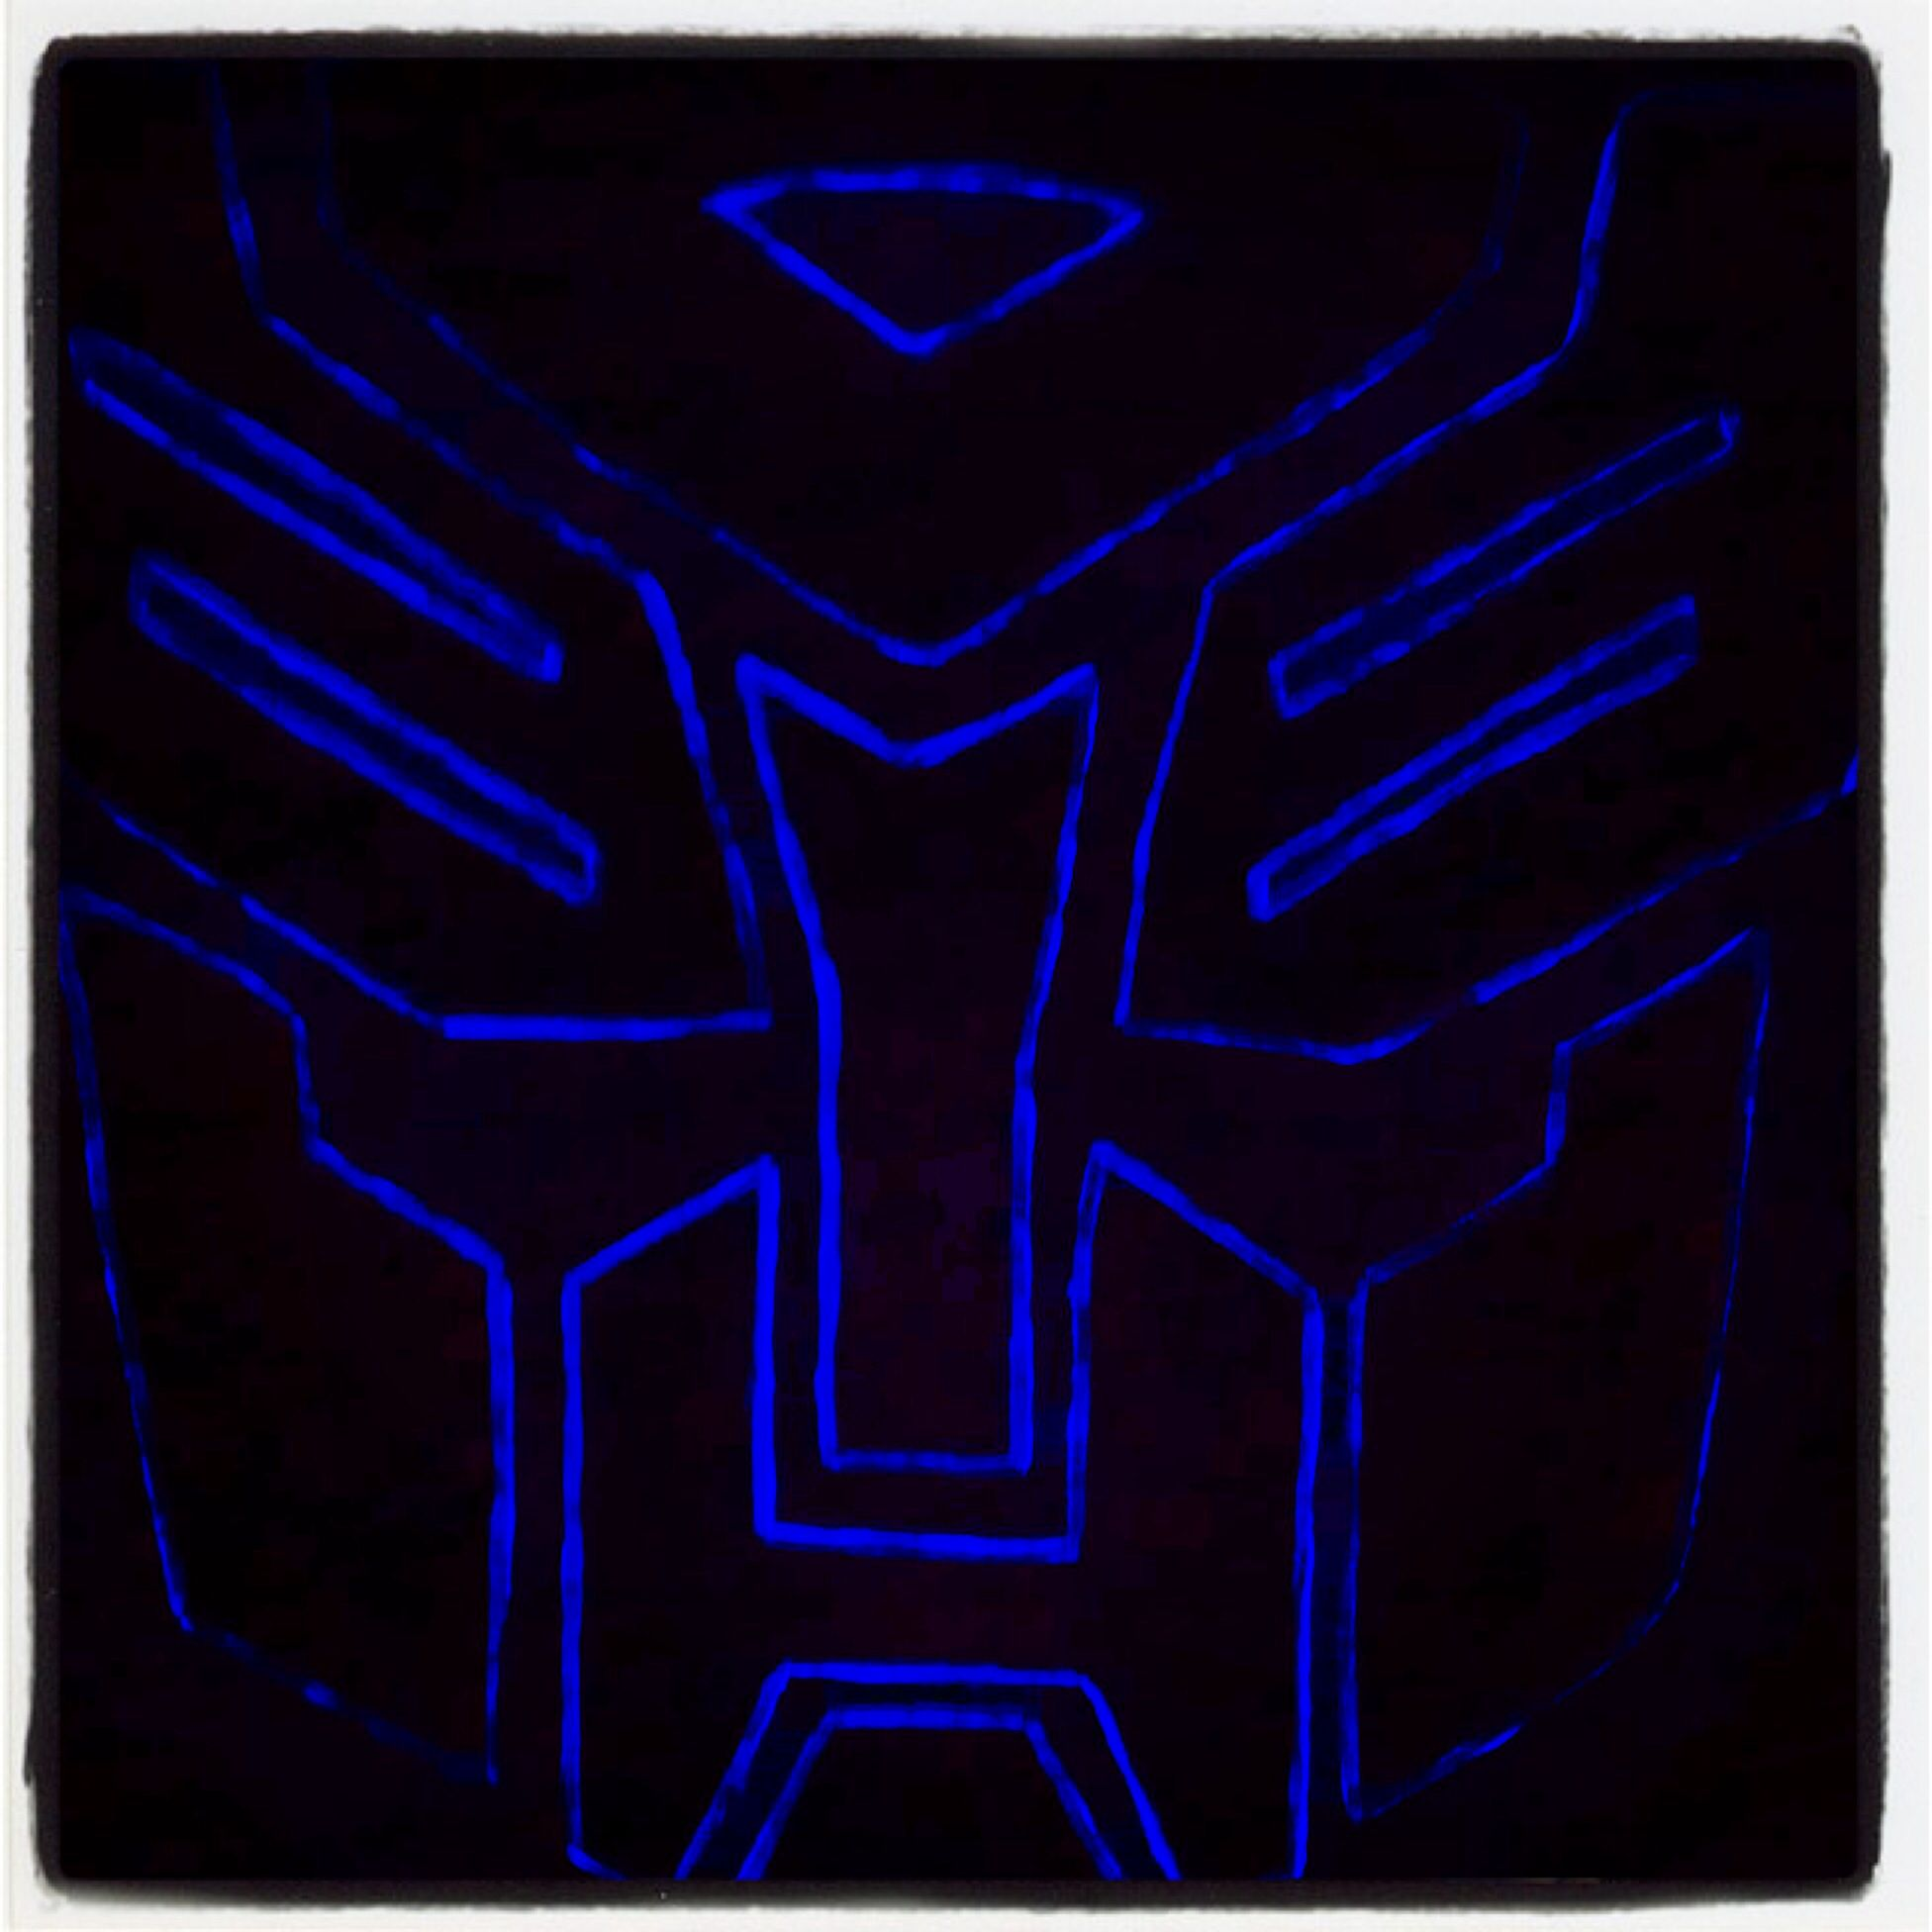 Huge Transformer Head Painted On Foam Insulation Board I Painted Over Lines Of Face With Clear Black Light Na With Images Light Nail Polish Painting Black Light